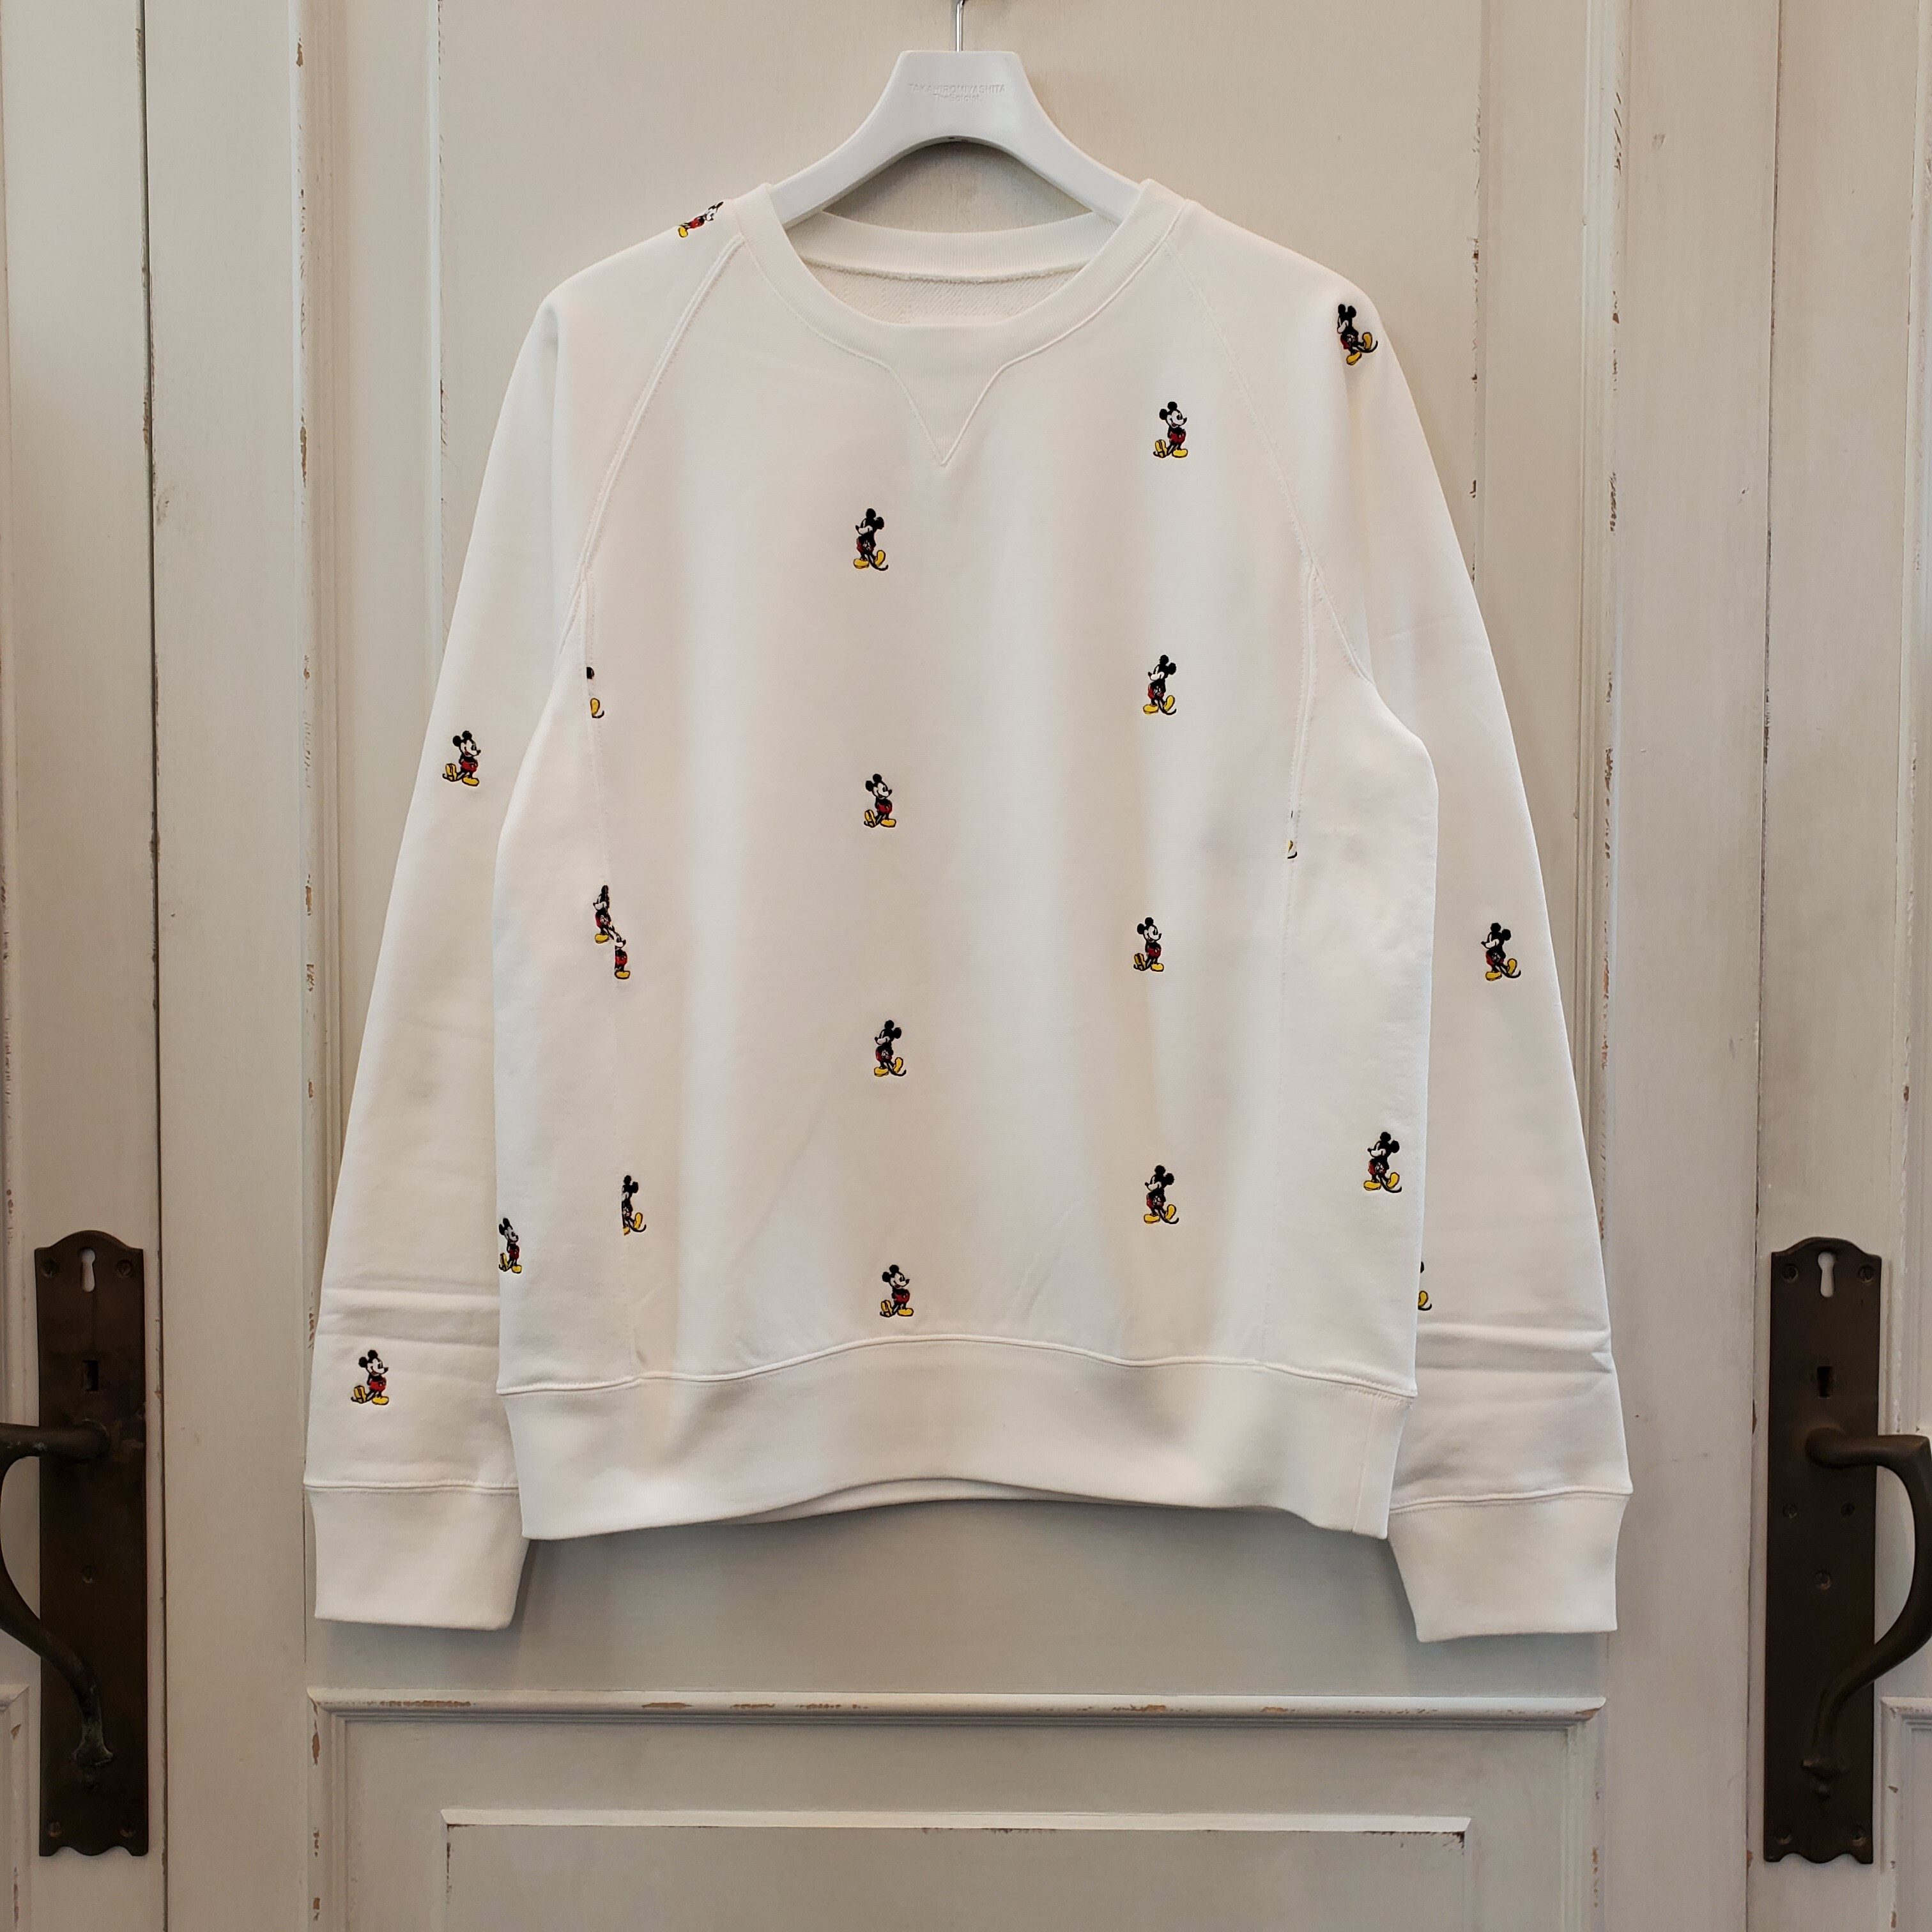 sc.0028aSS20 Mickey Mouse embroidered crew neck sweatshirt. (original color Mickey Mouse)